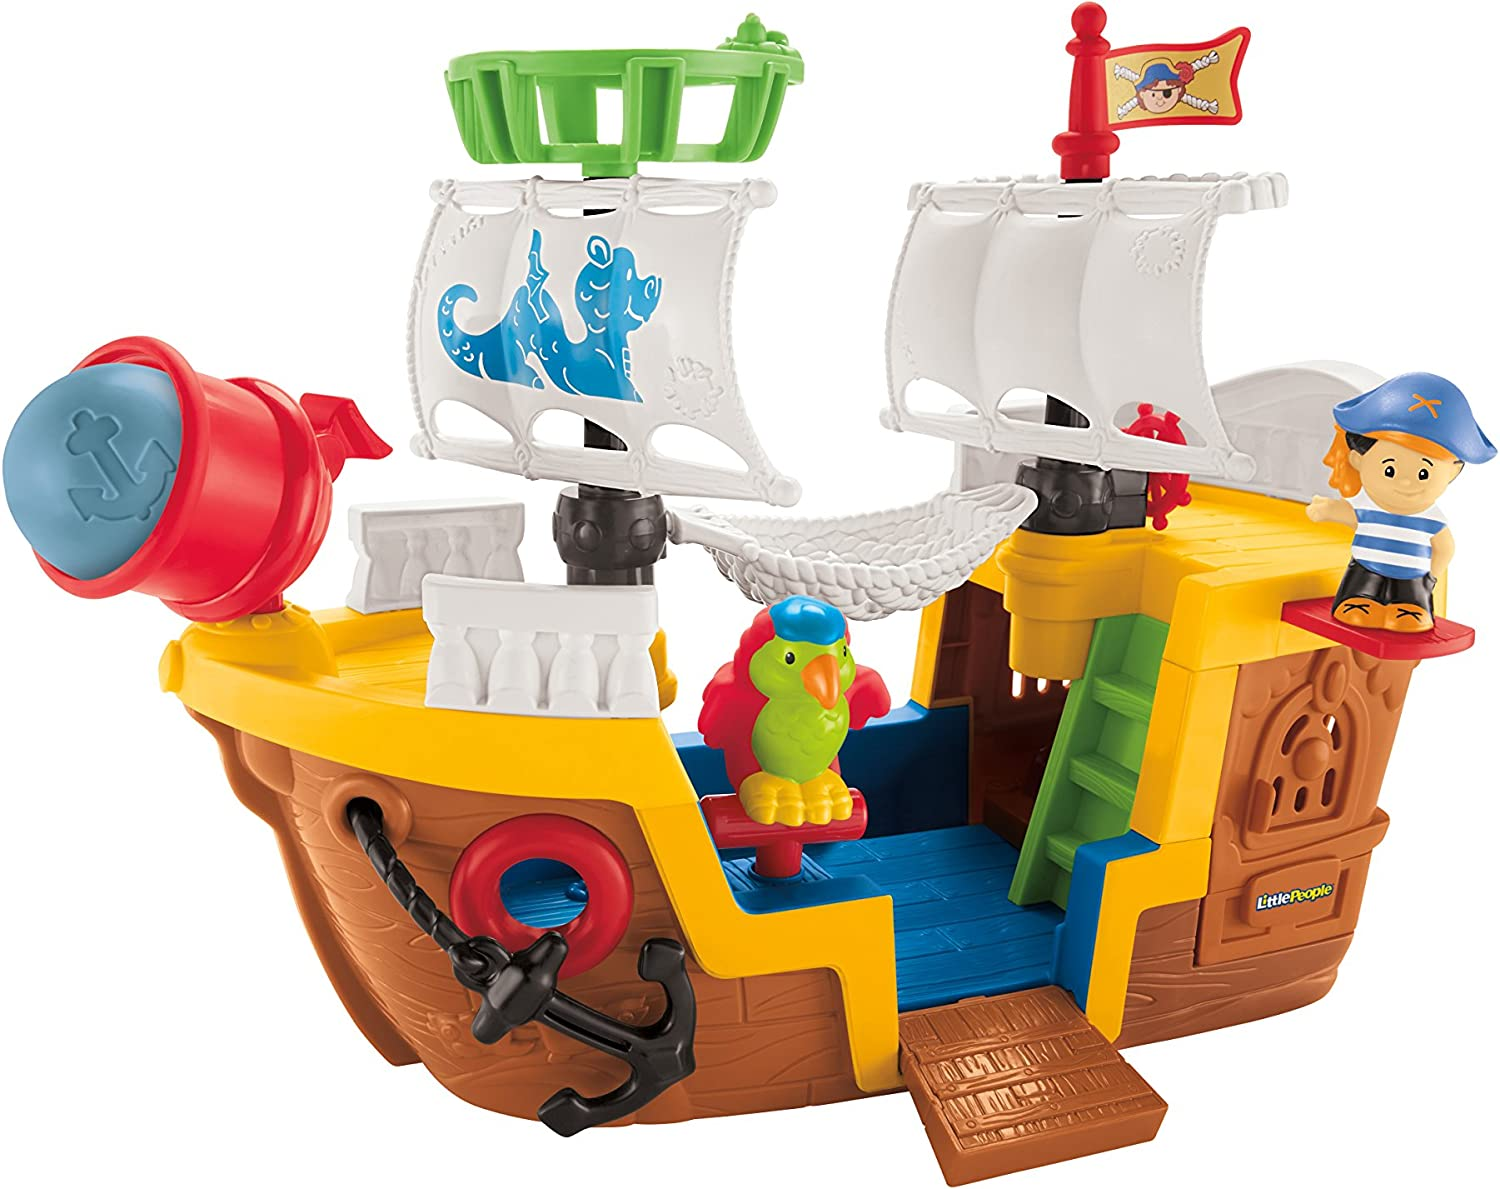 FisherPrice Little People Pirate Ship